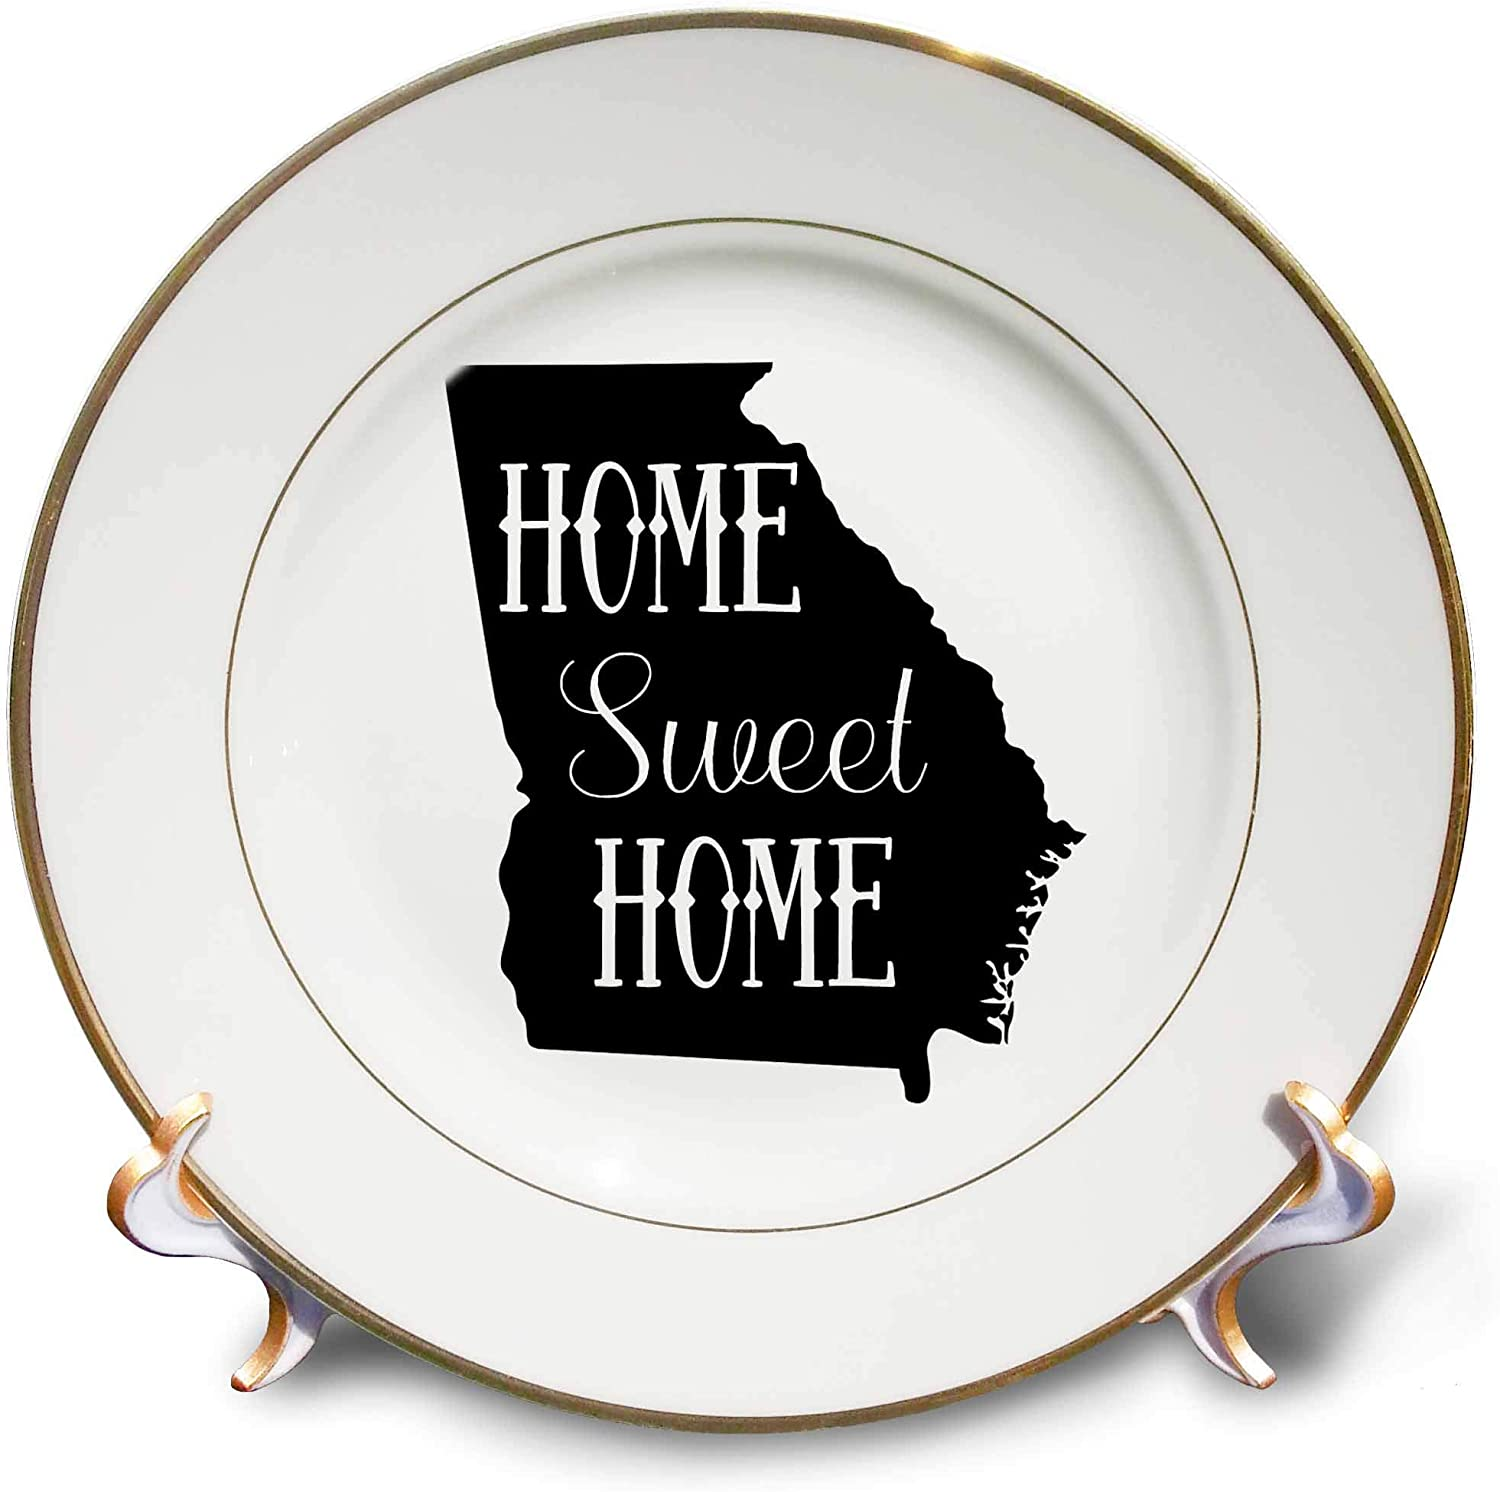 3dRose Stamp City - Typography - Home Sweet Home Inside The State of Georgia. White Background. - 8 inch Porcelain Plate (cp_323955_1)